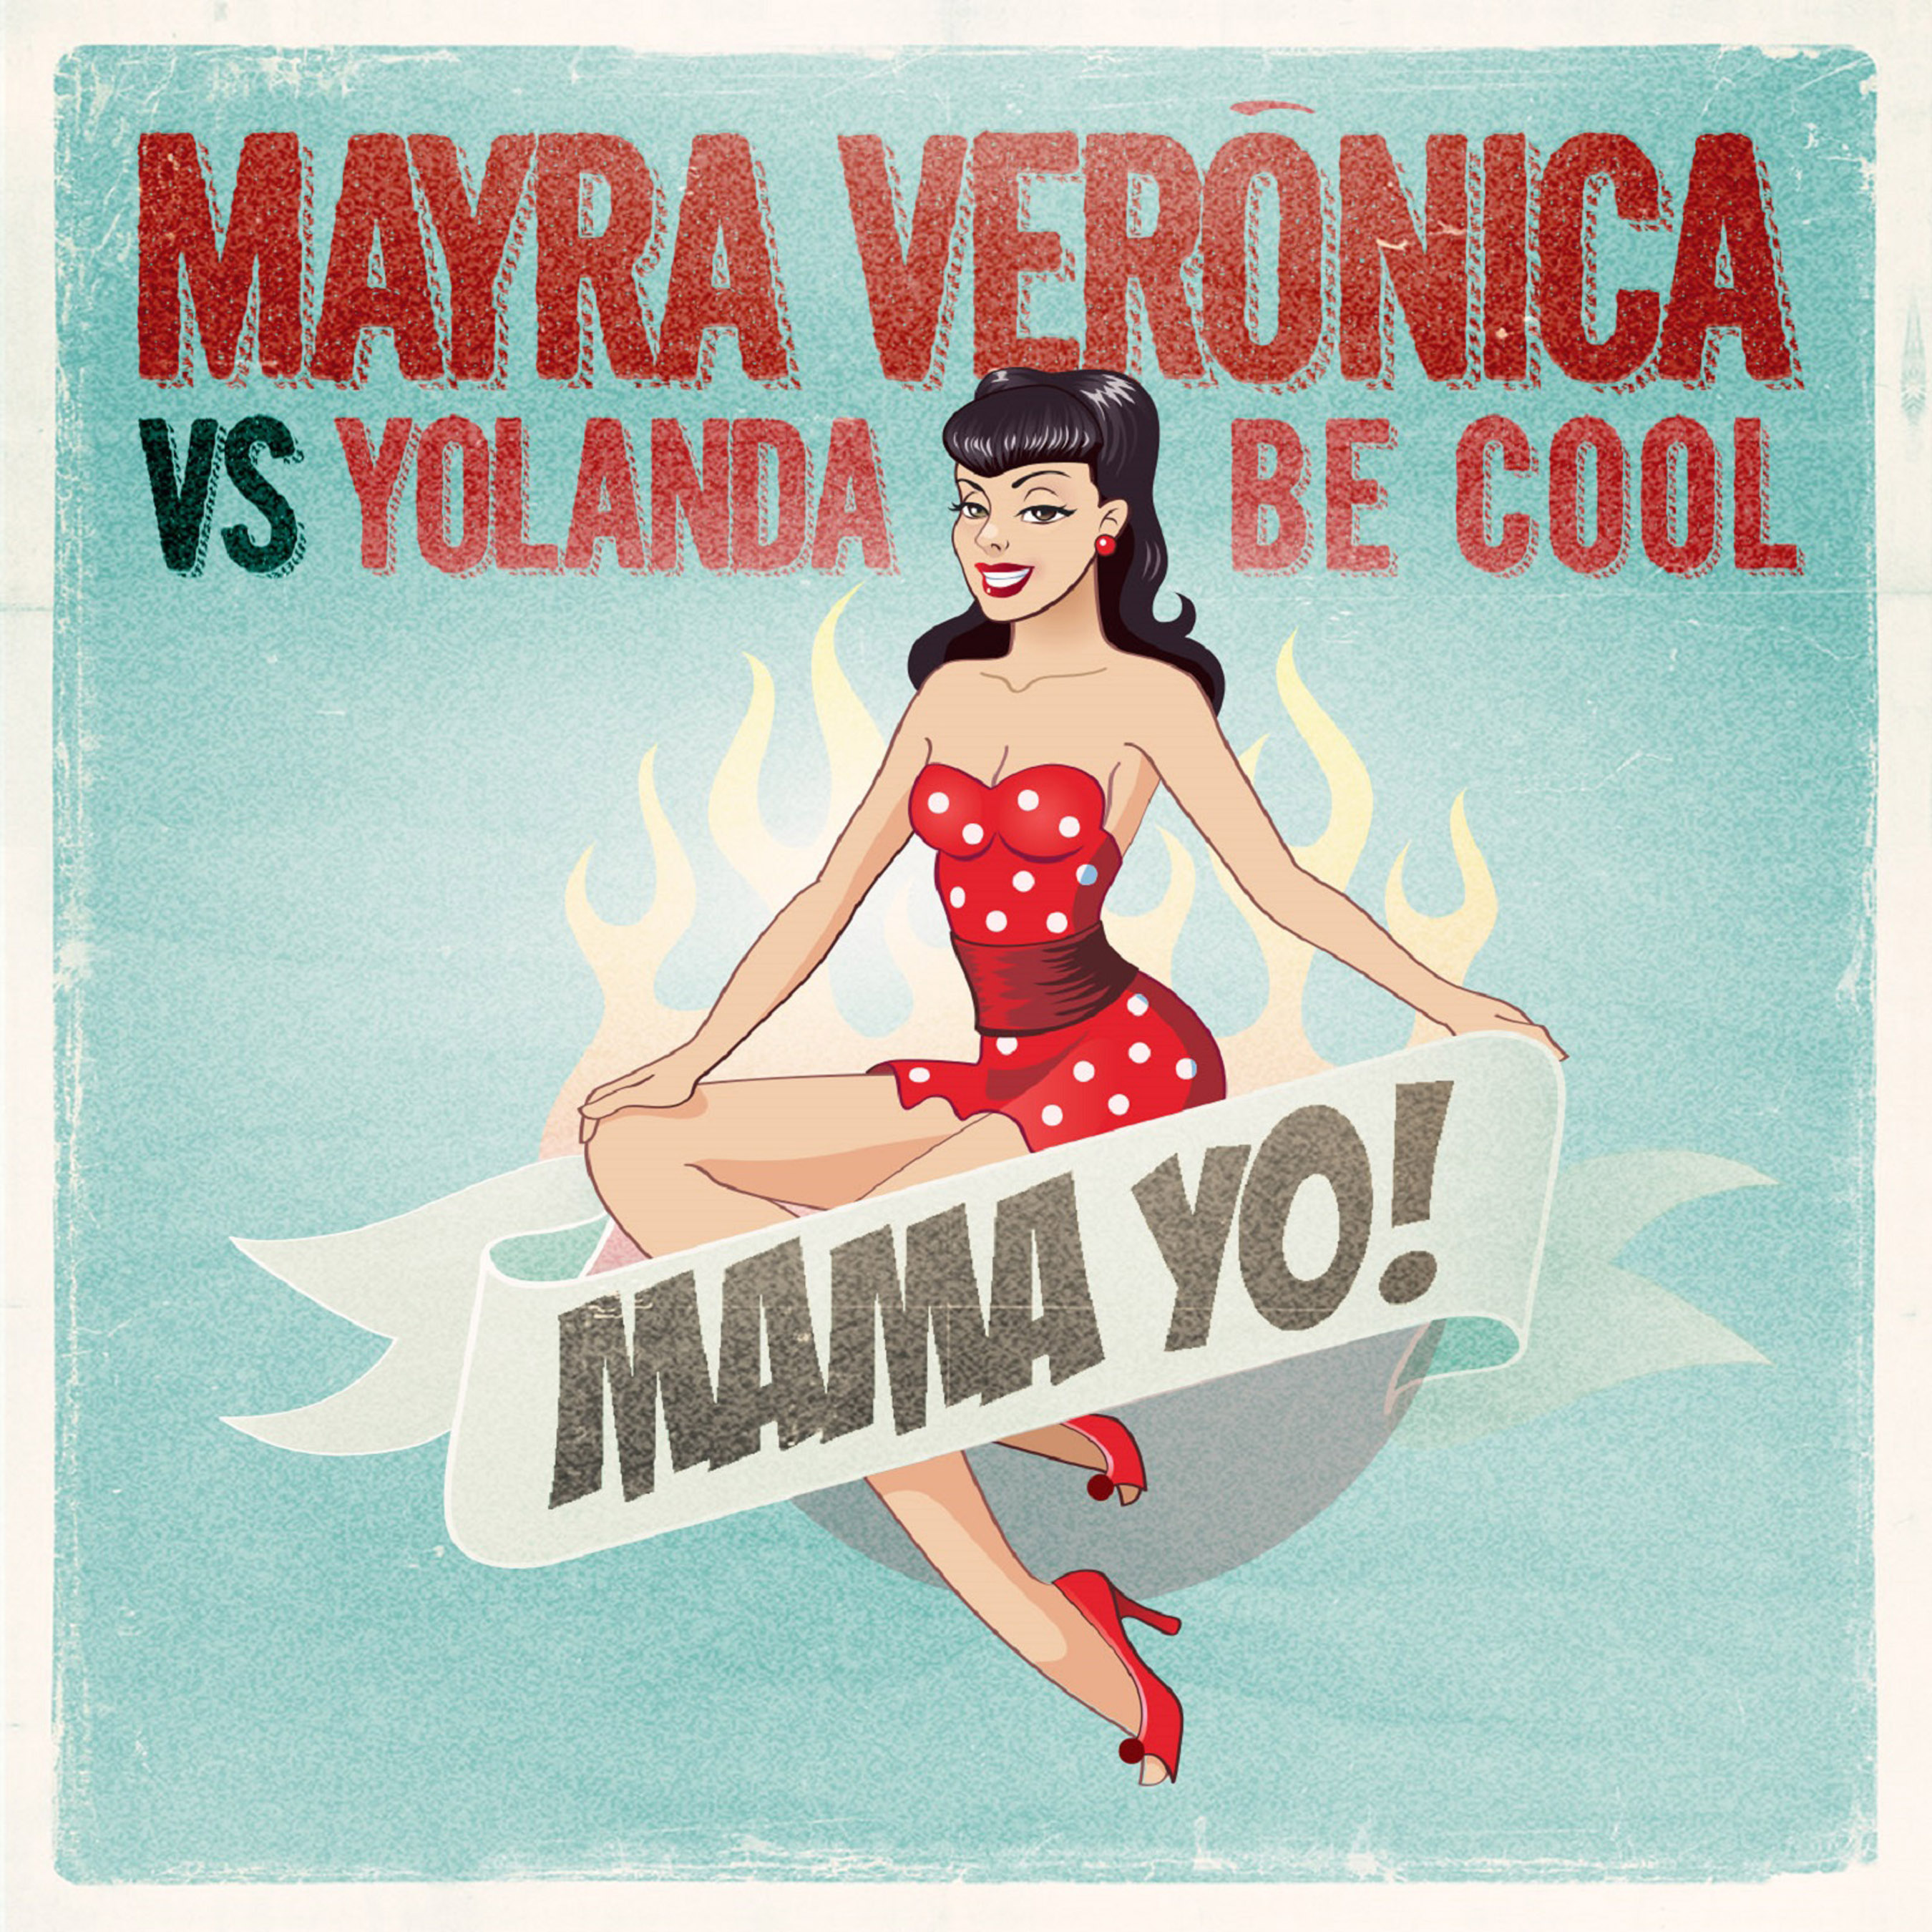 Mayra Veronica Vs Yolanda Be Cool